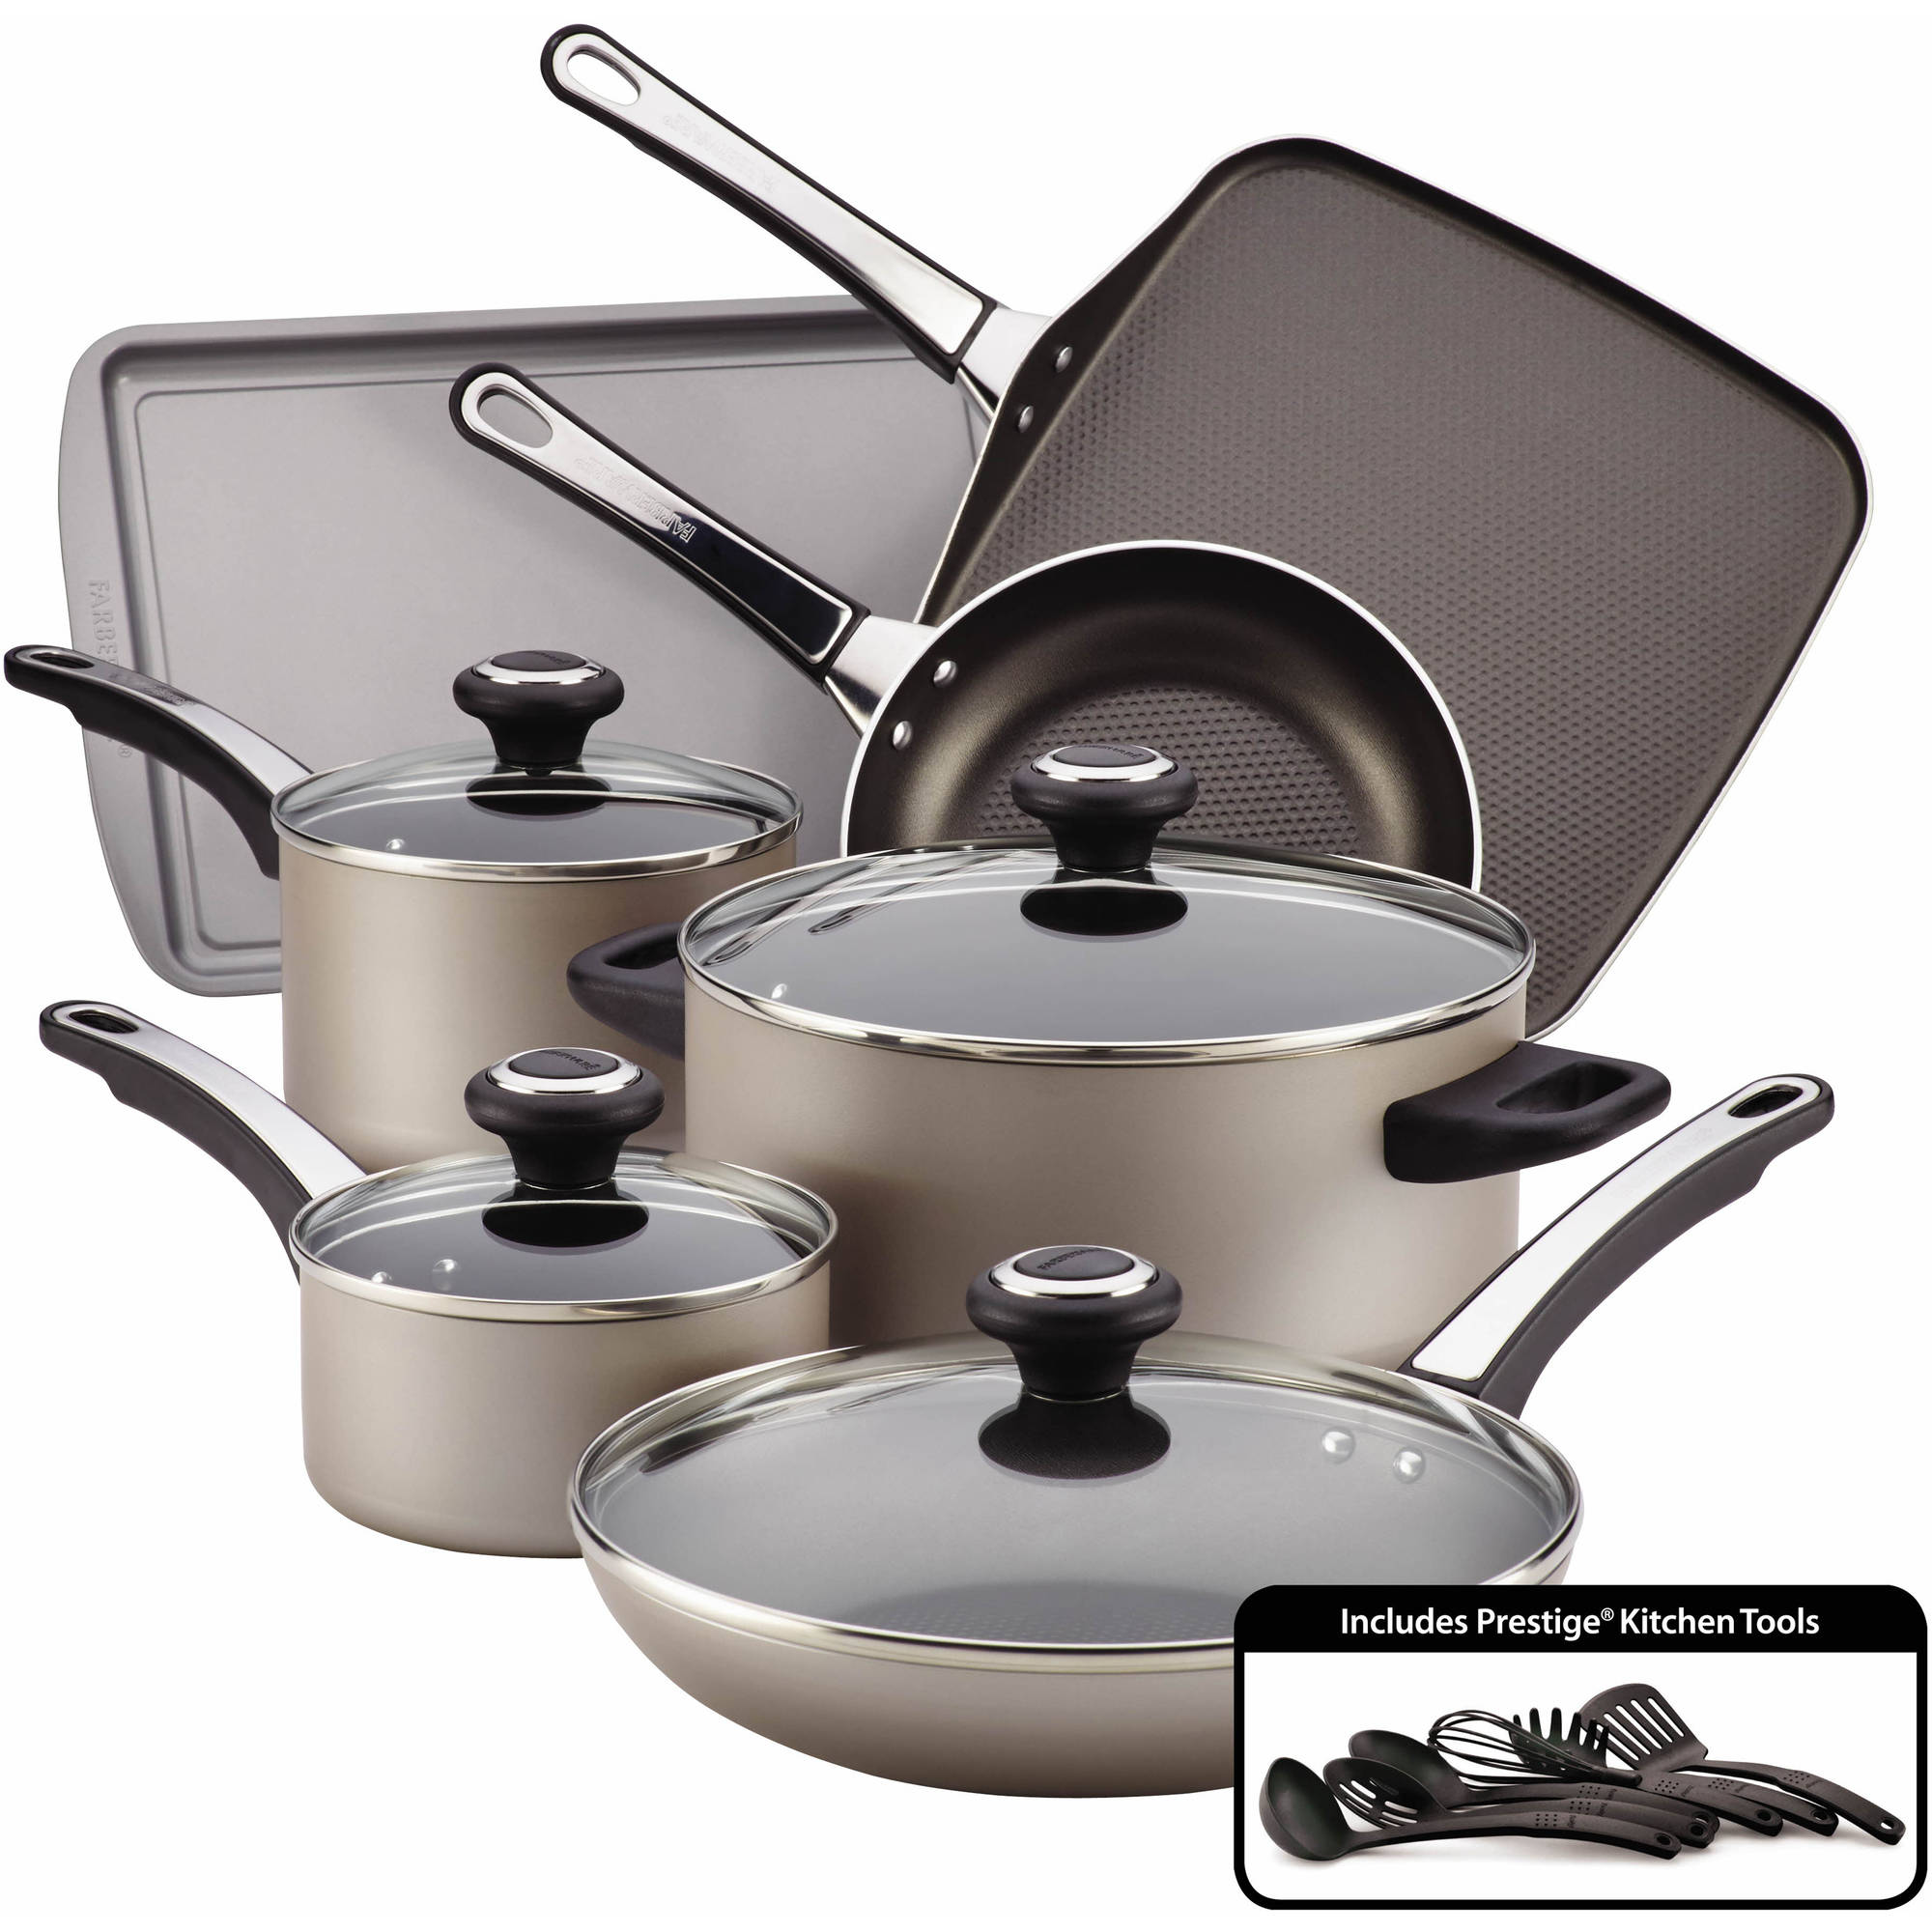 Faberware High Performance Nonstick 17-Piece Cookware Set by Farberware Cookware